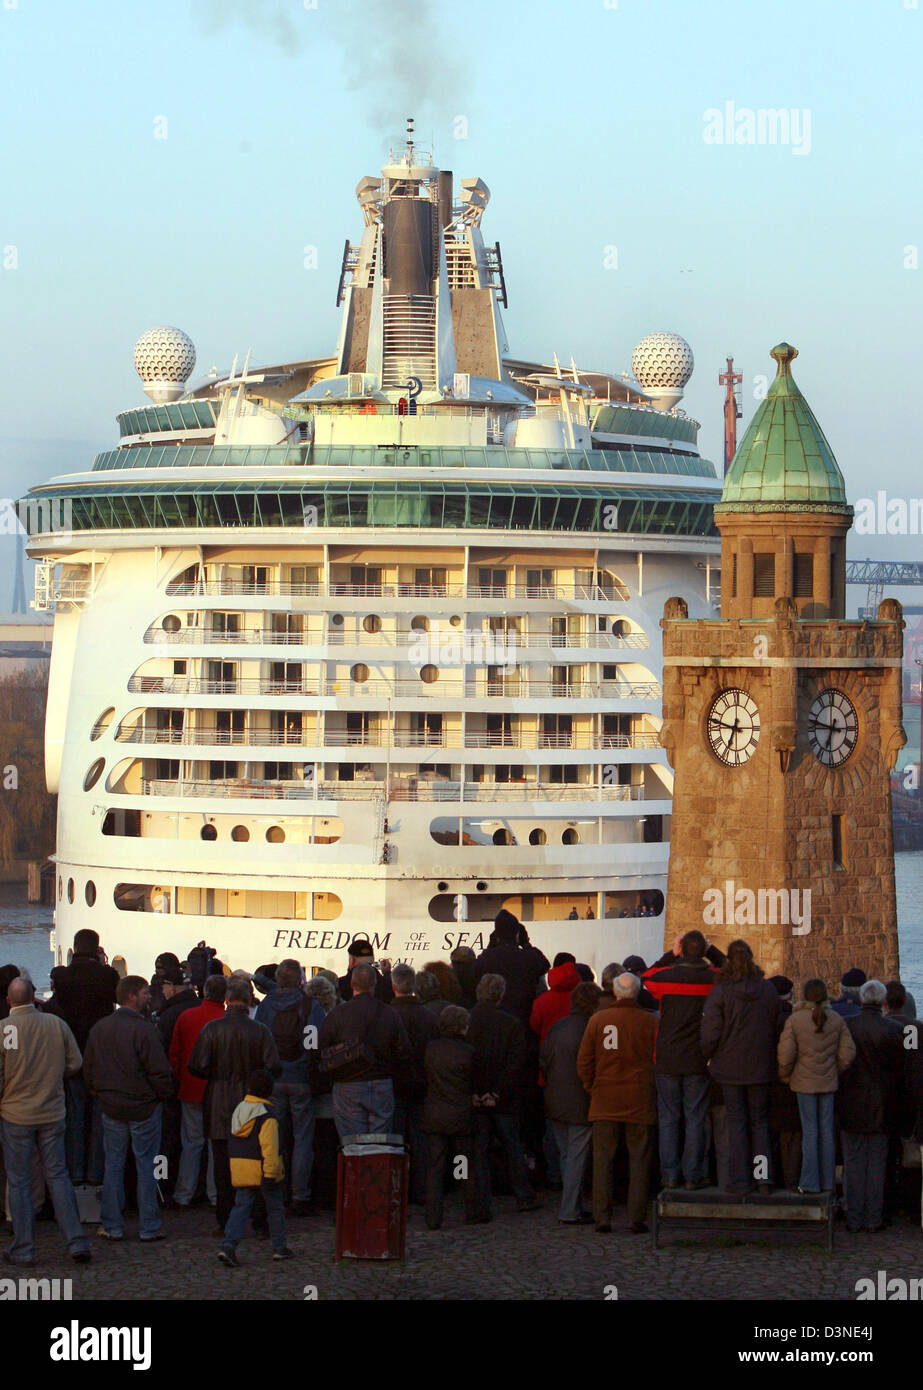 The giant cruiser 'Freedom of the Seas'  is watched by many onlookers on its way to the dock of the shipyard - Stock Image